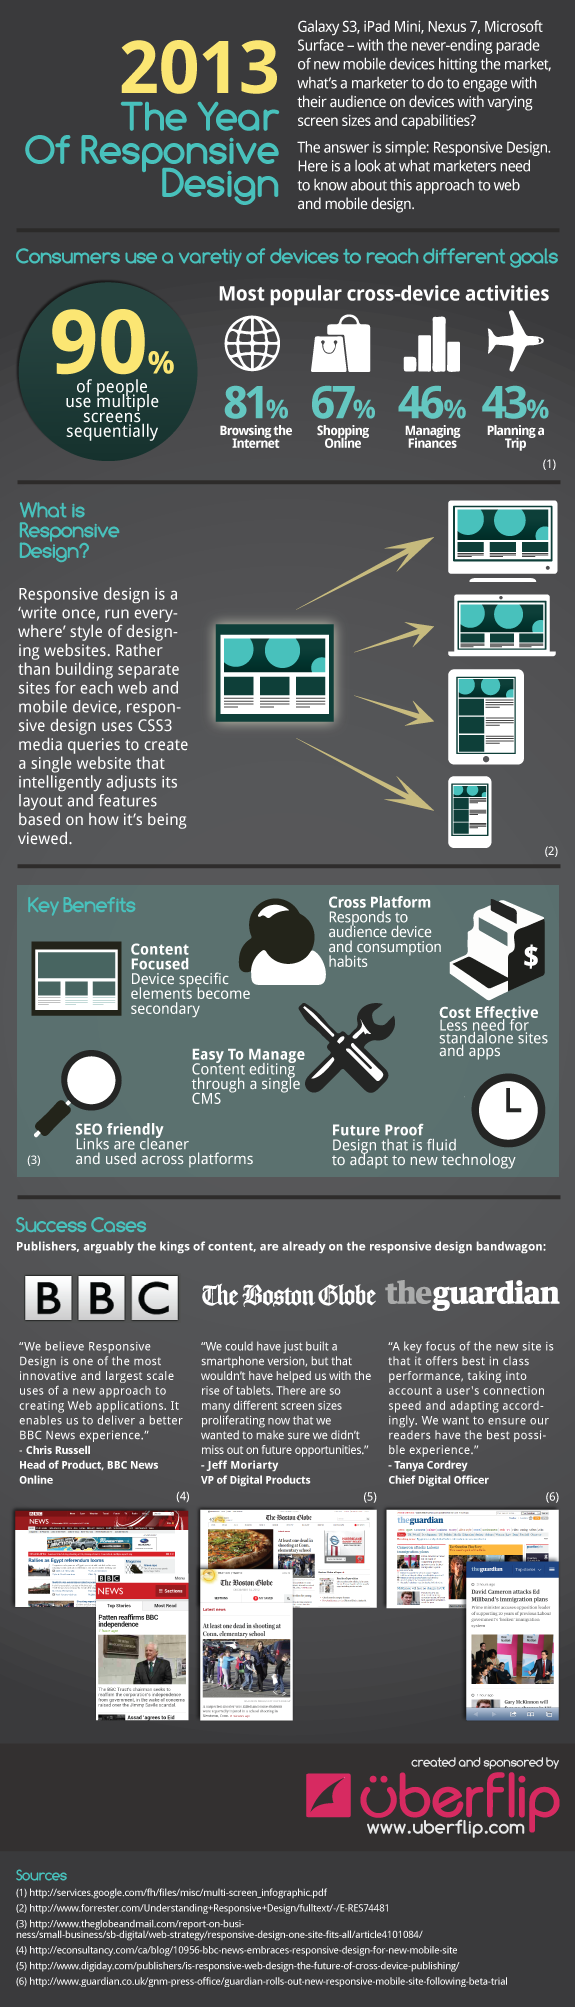 Infographic 2013 The Year Of Responsive Design Infographic Marketing Infographic Responsive Design